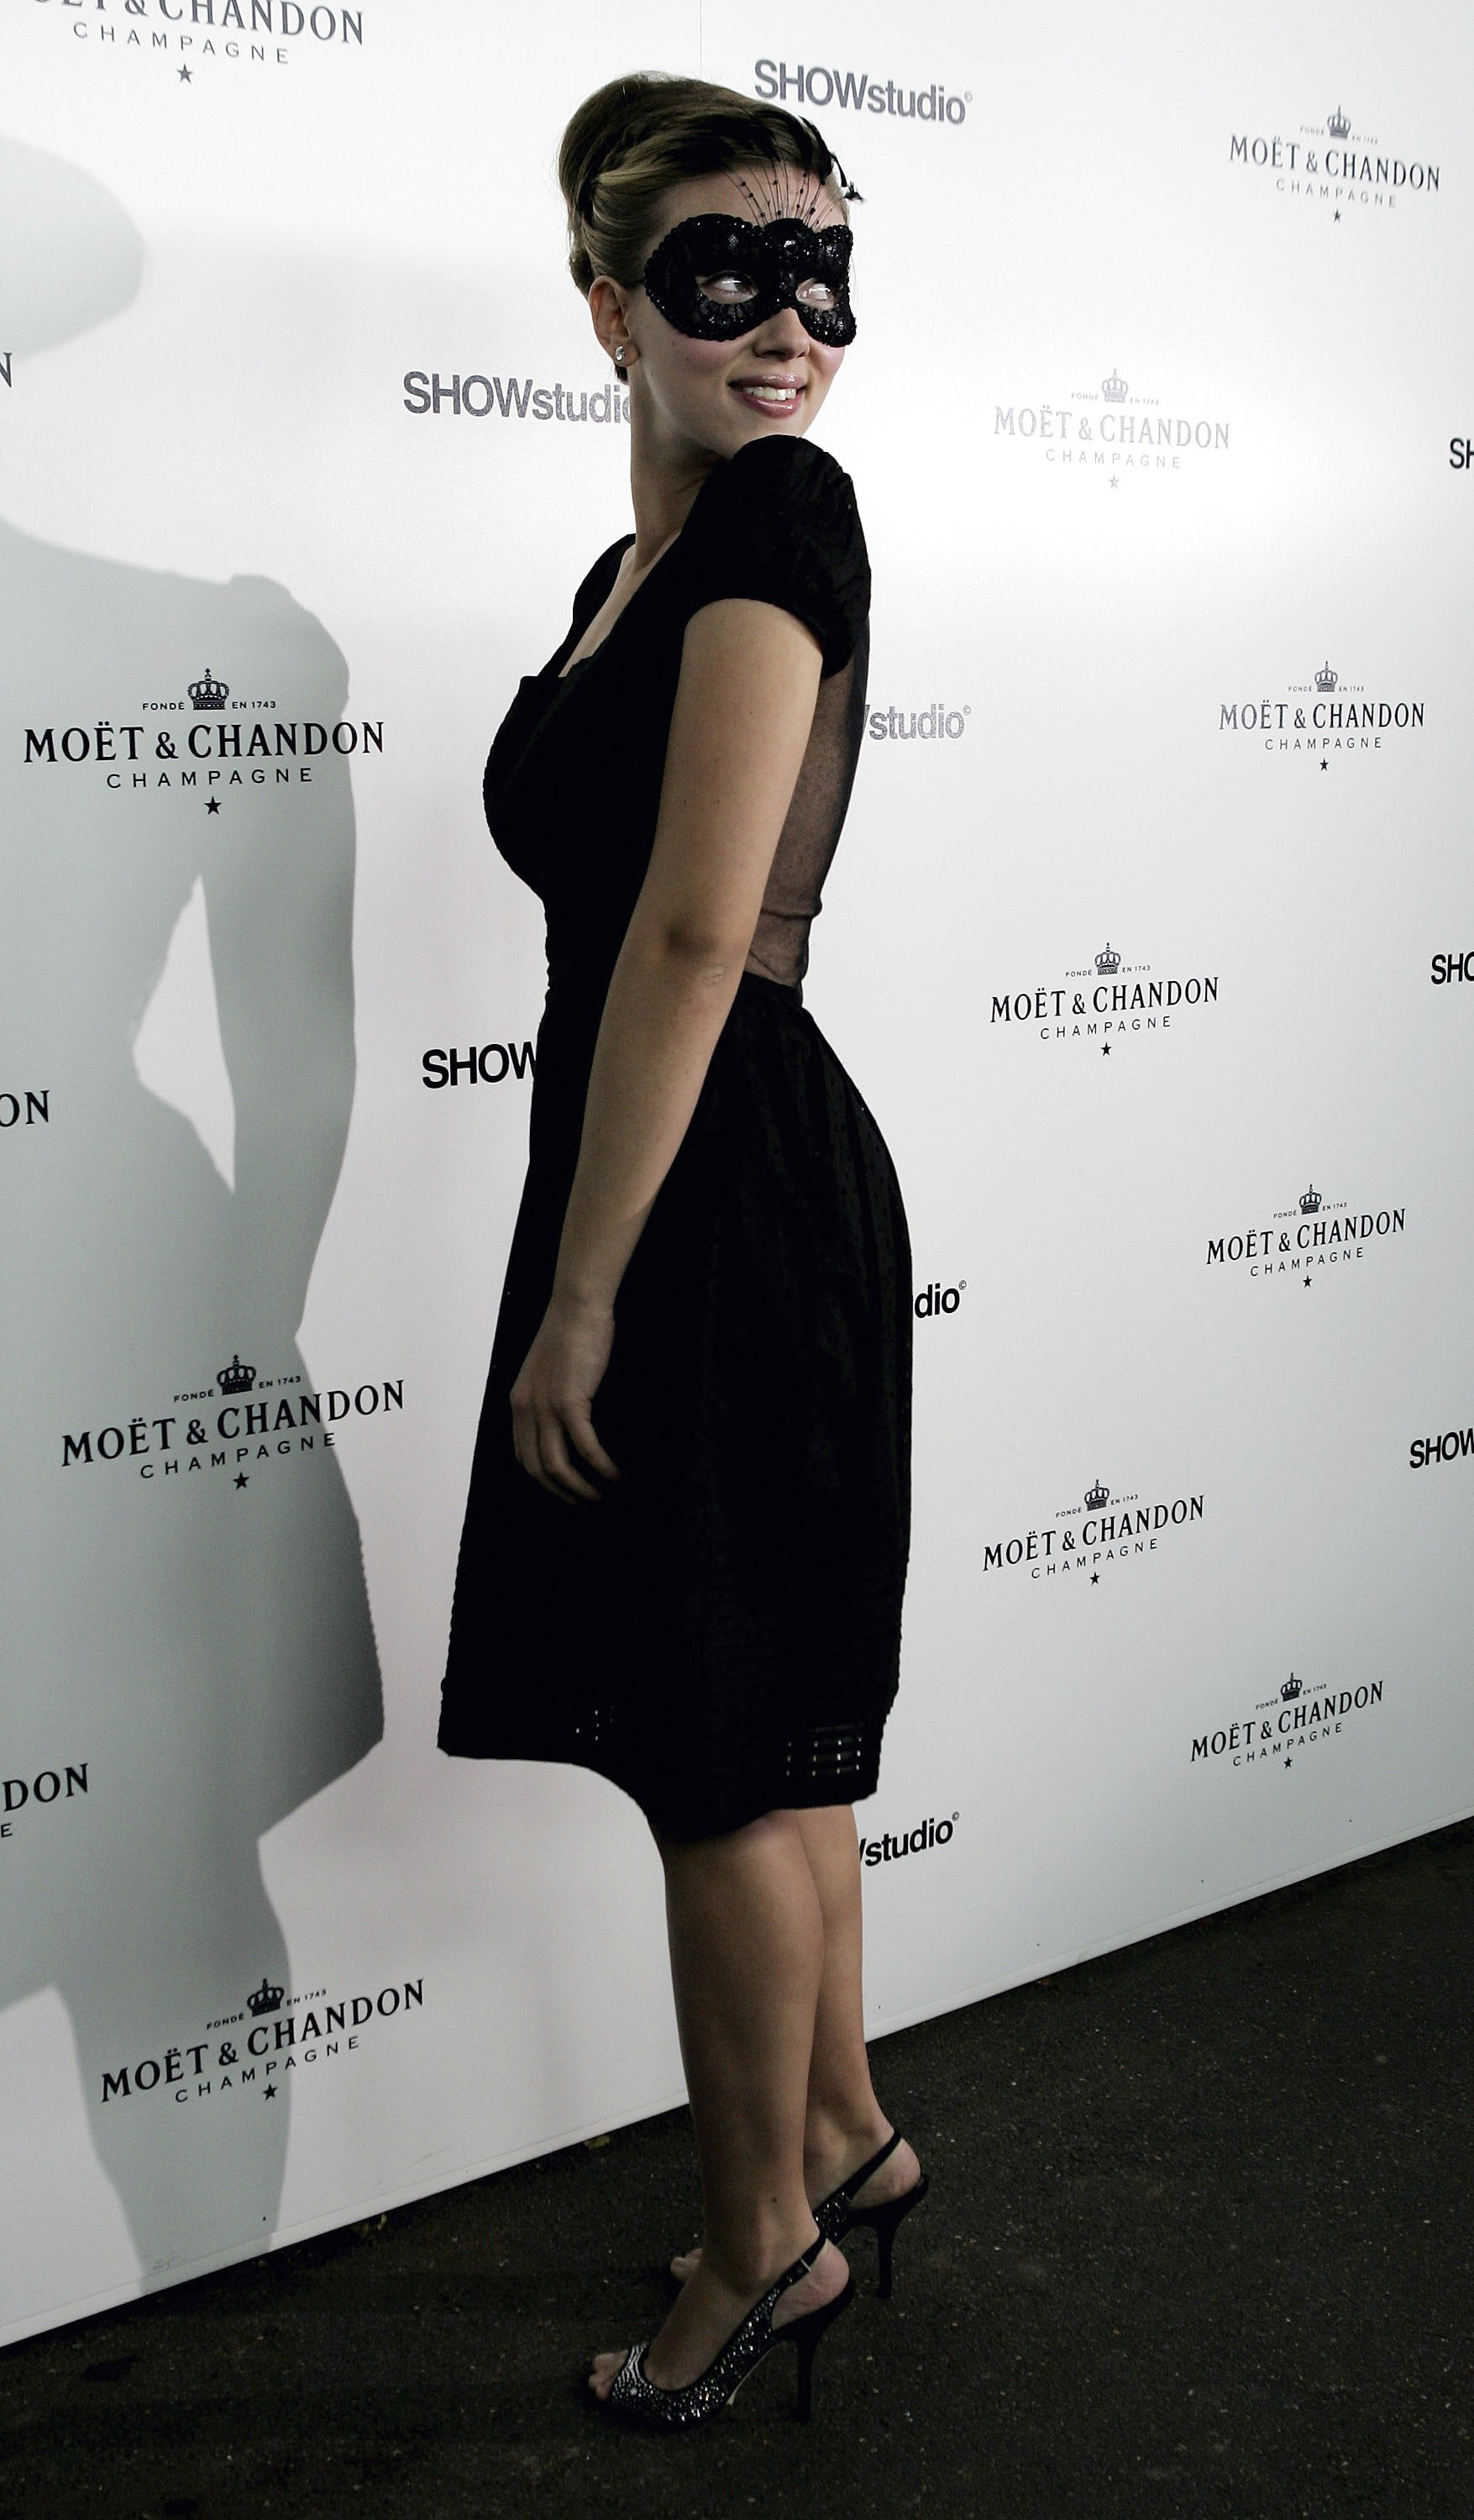 Scarlett Johansson at Moet and Chandon Fashion Tribute